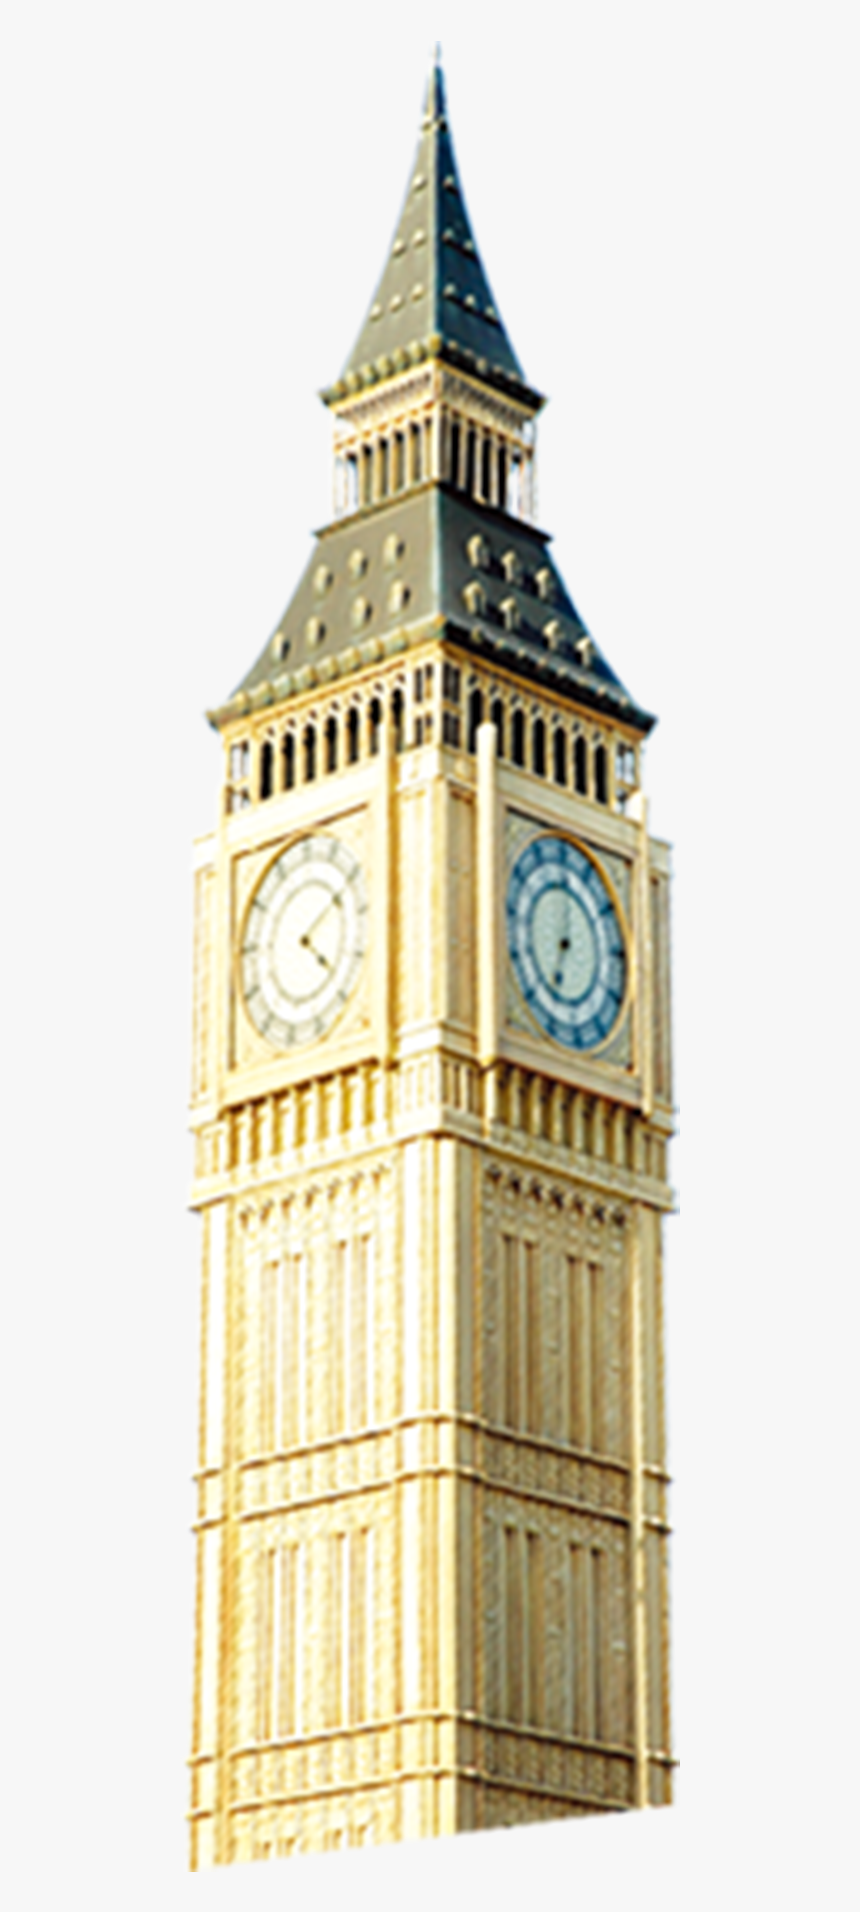 Bell Tower Png - Big Ben Tower Png, Transparent Png, Free Download